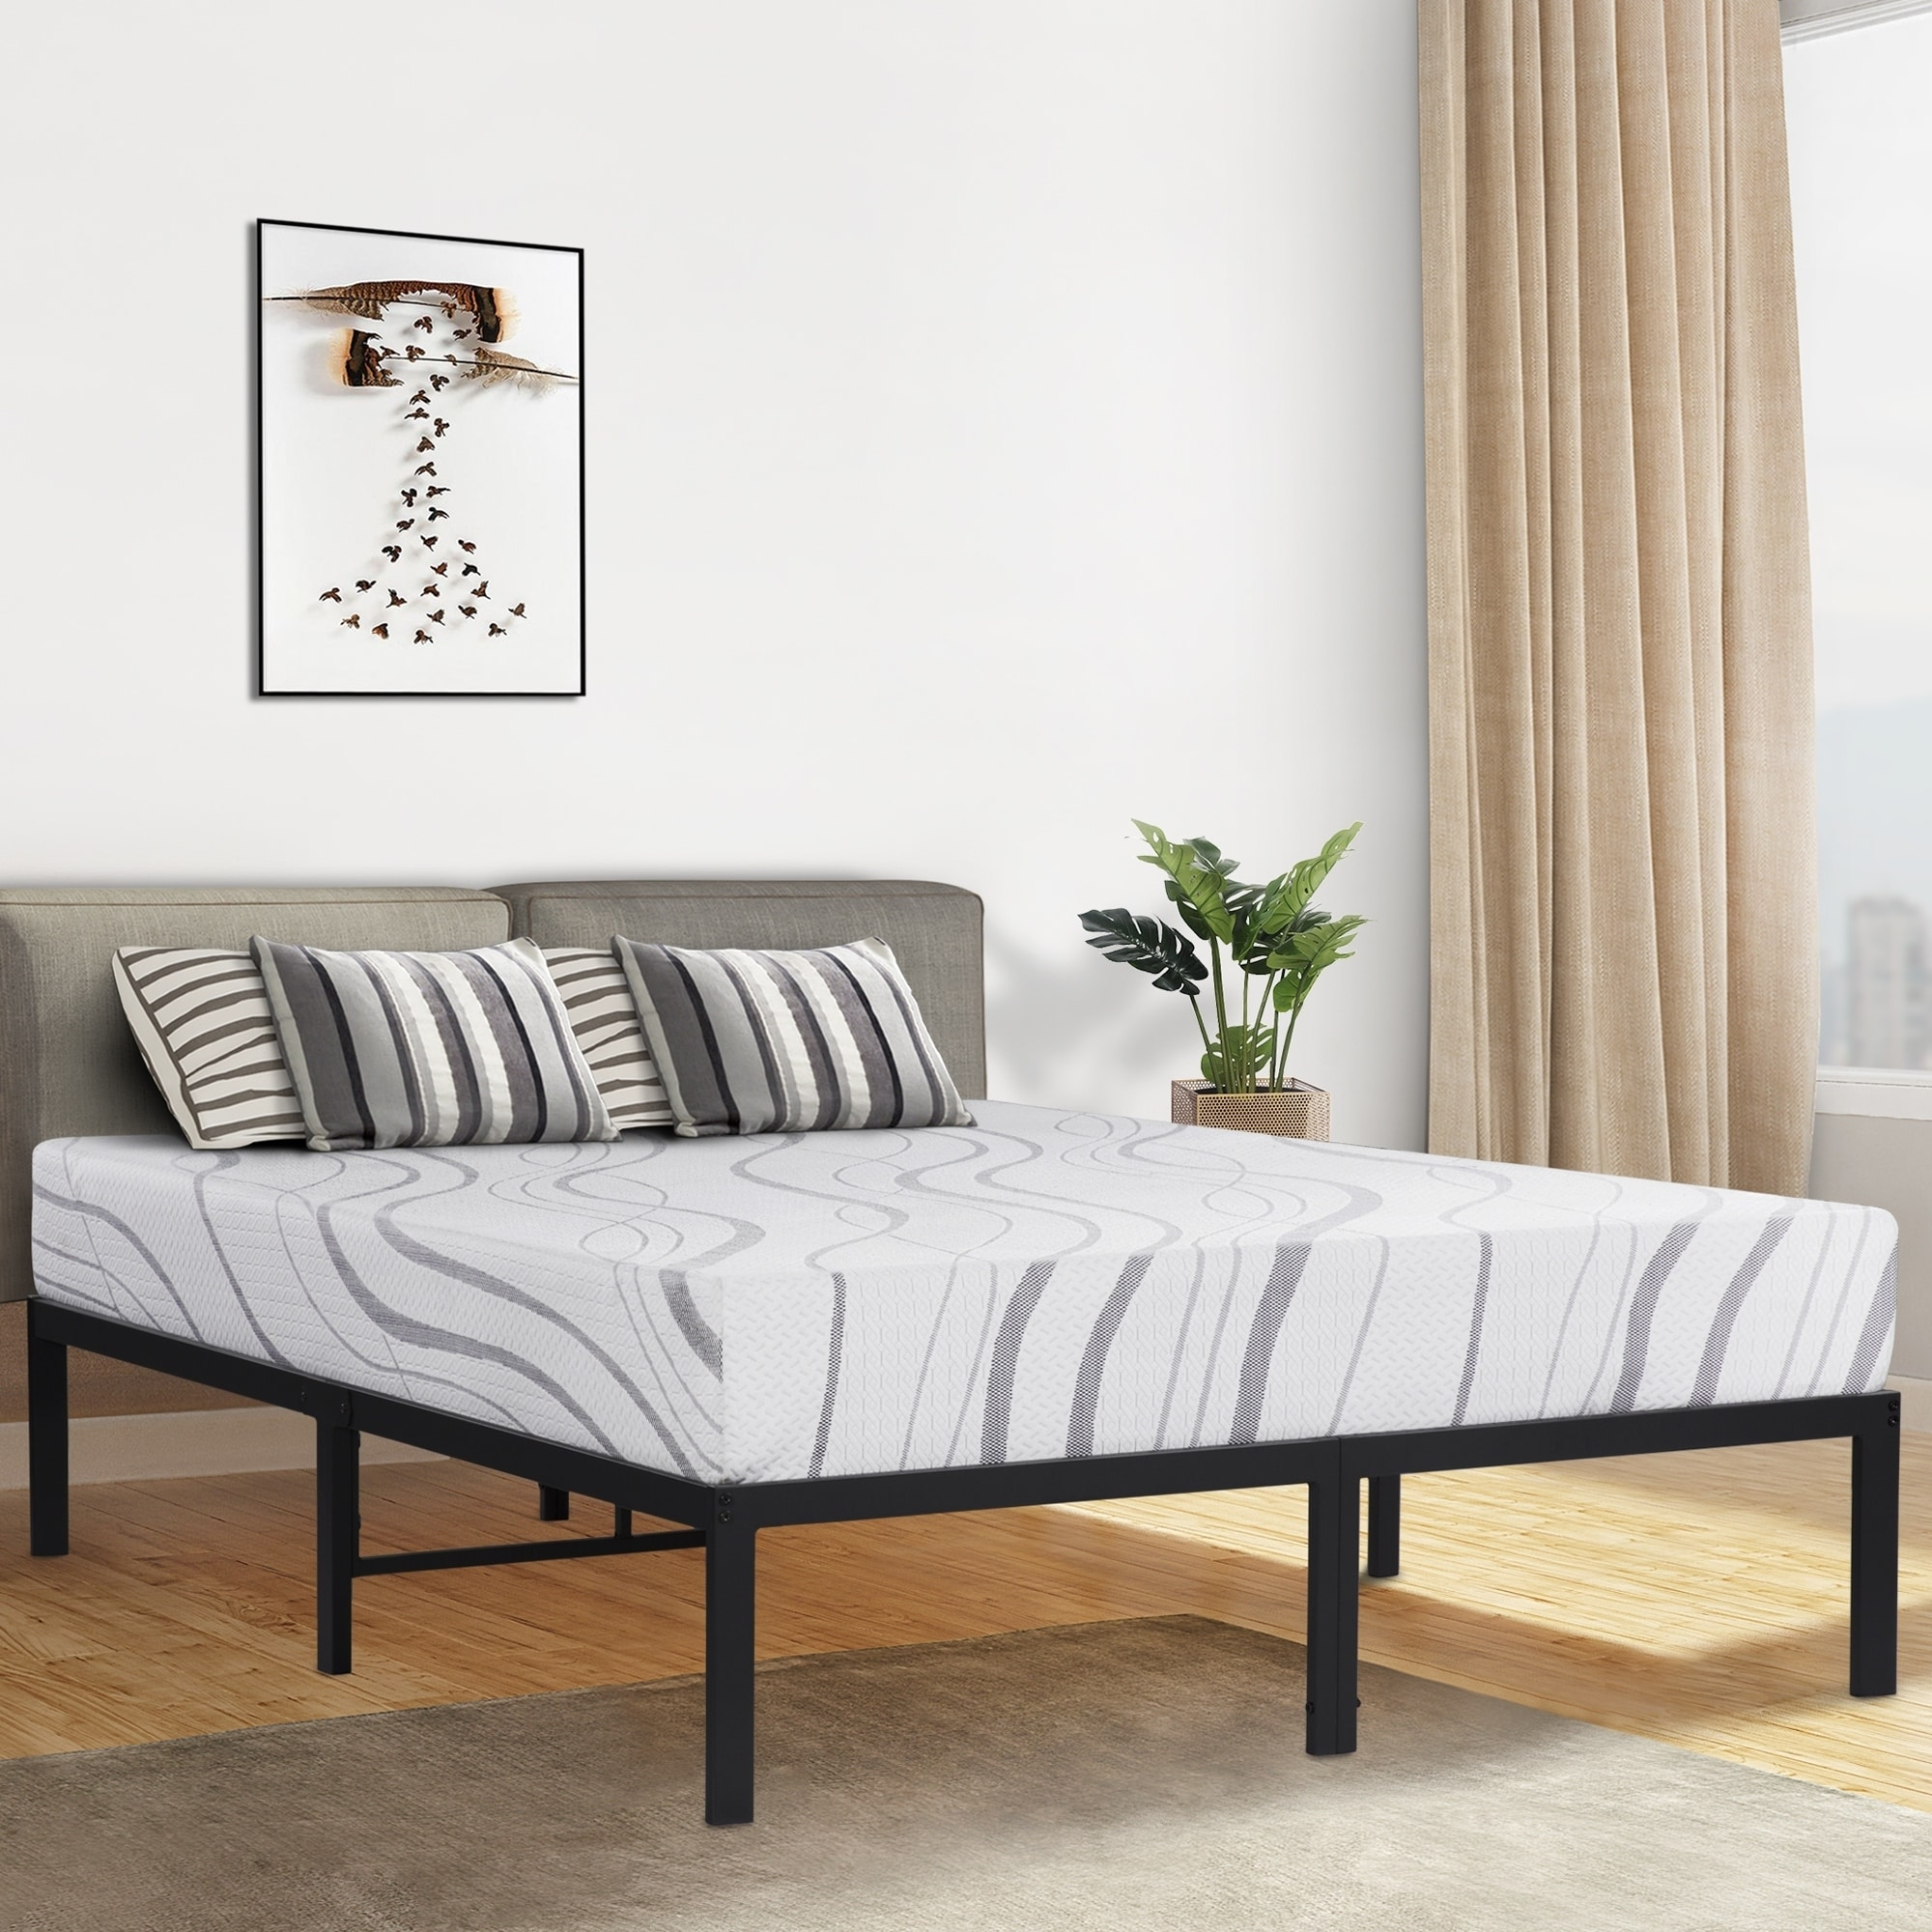 Dura Beds Mattress Sleeplanner 14 Inch Queen Size Dura Steel Slat Bed Frame Ovt 2000